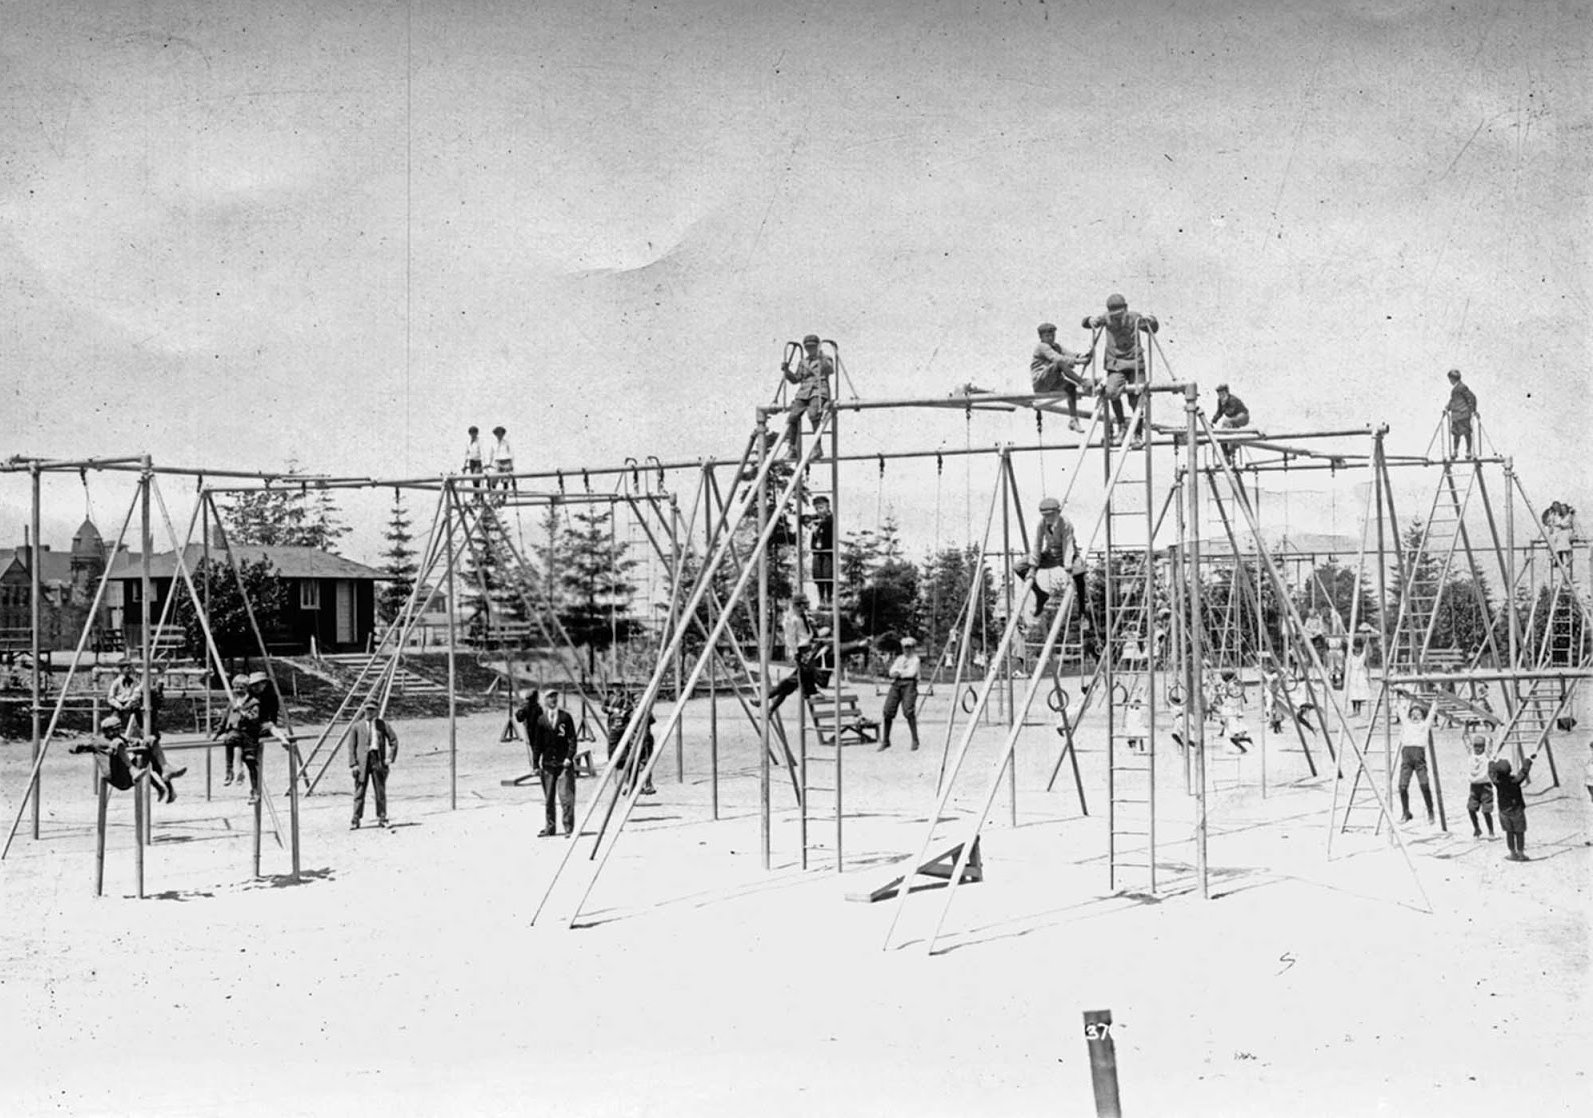 Hiawatha Playground, 1912. From the Seattle Municipal Archives Collection.